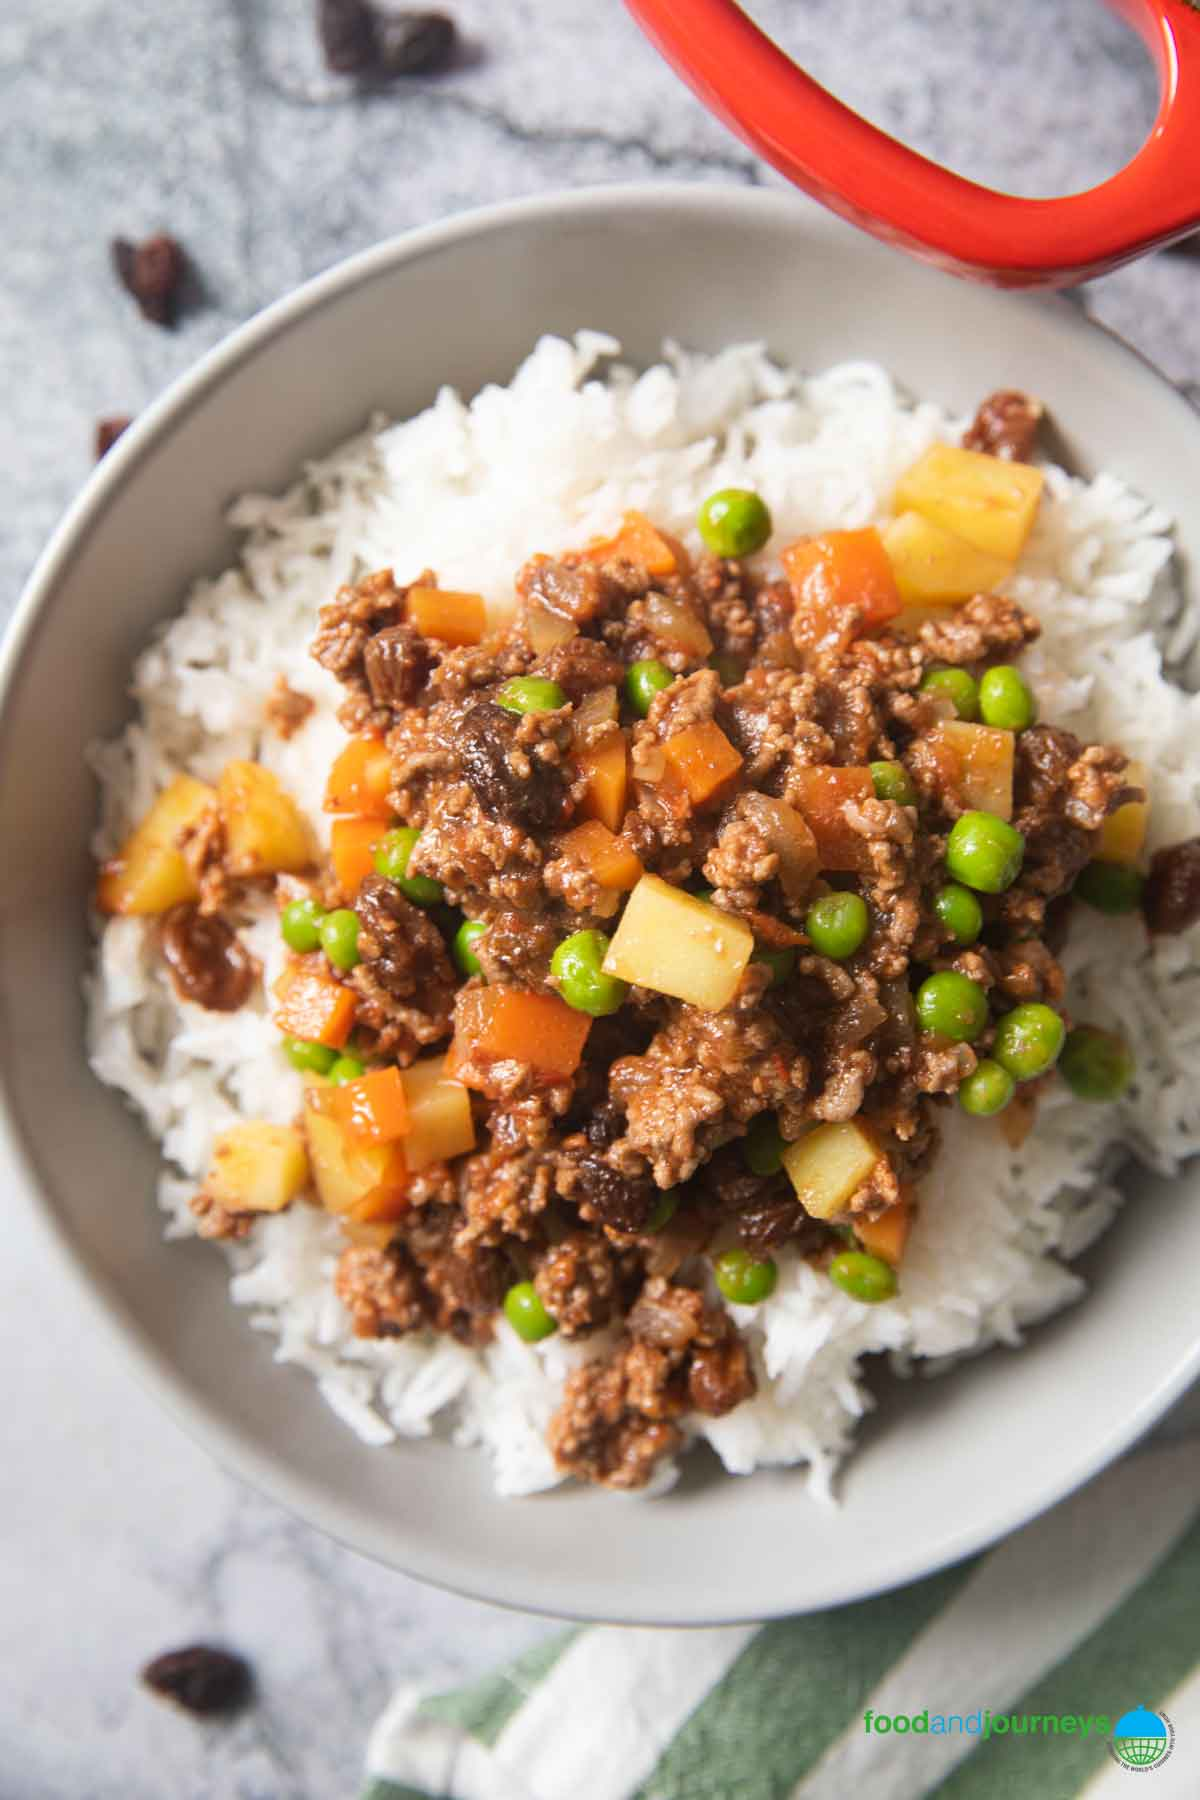 Beef picadillo served on top of steamed white rice, with some dried raisins on the counter.